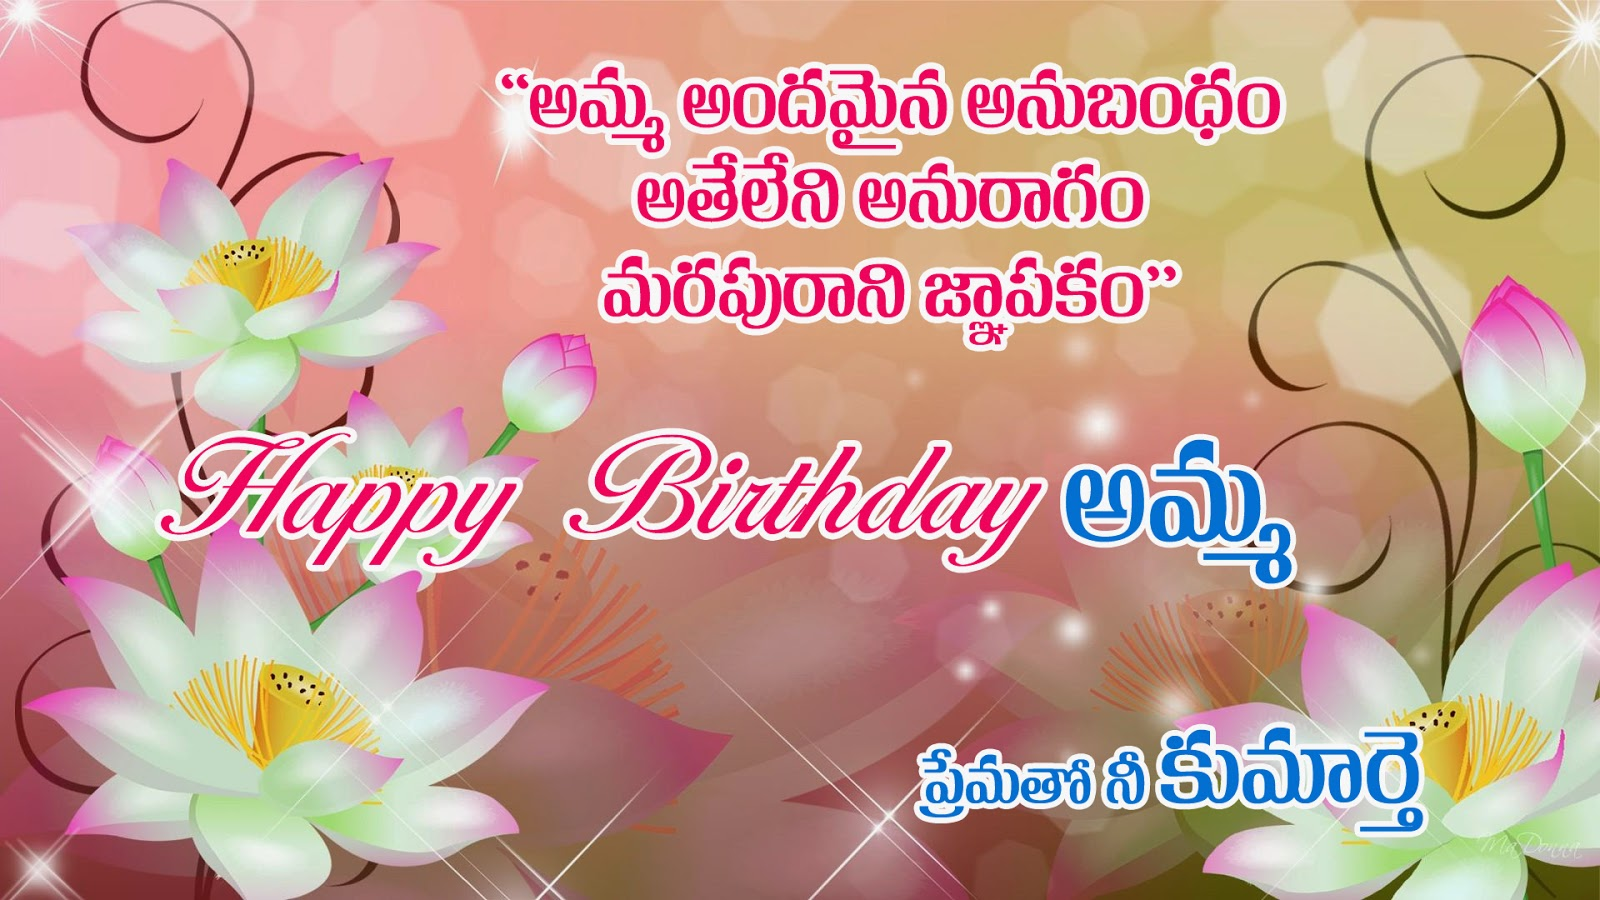 Amma kavithai birthday wishing image with quote in tamil words